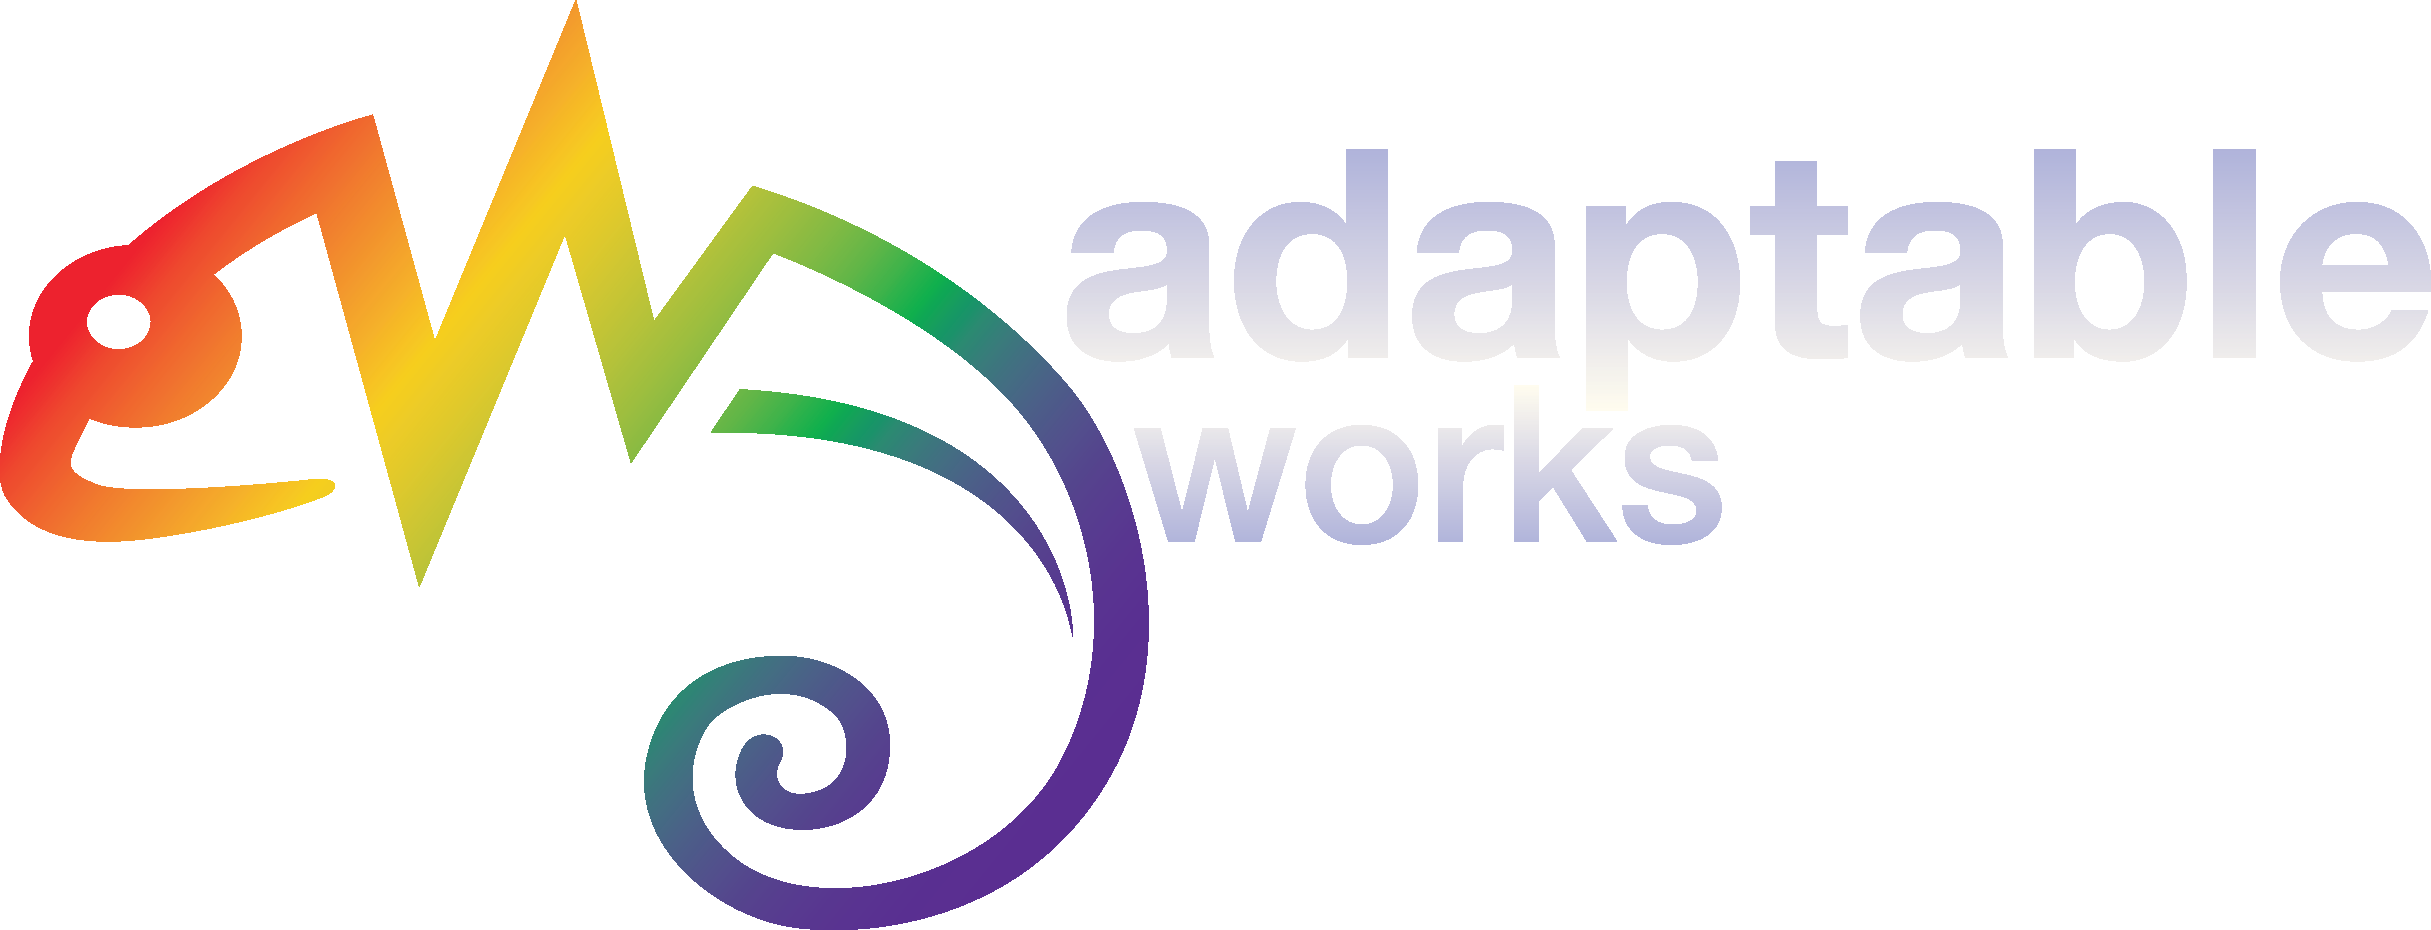 Adaptable Works